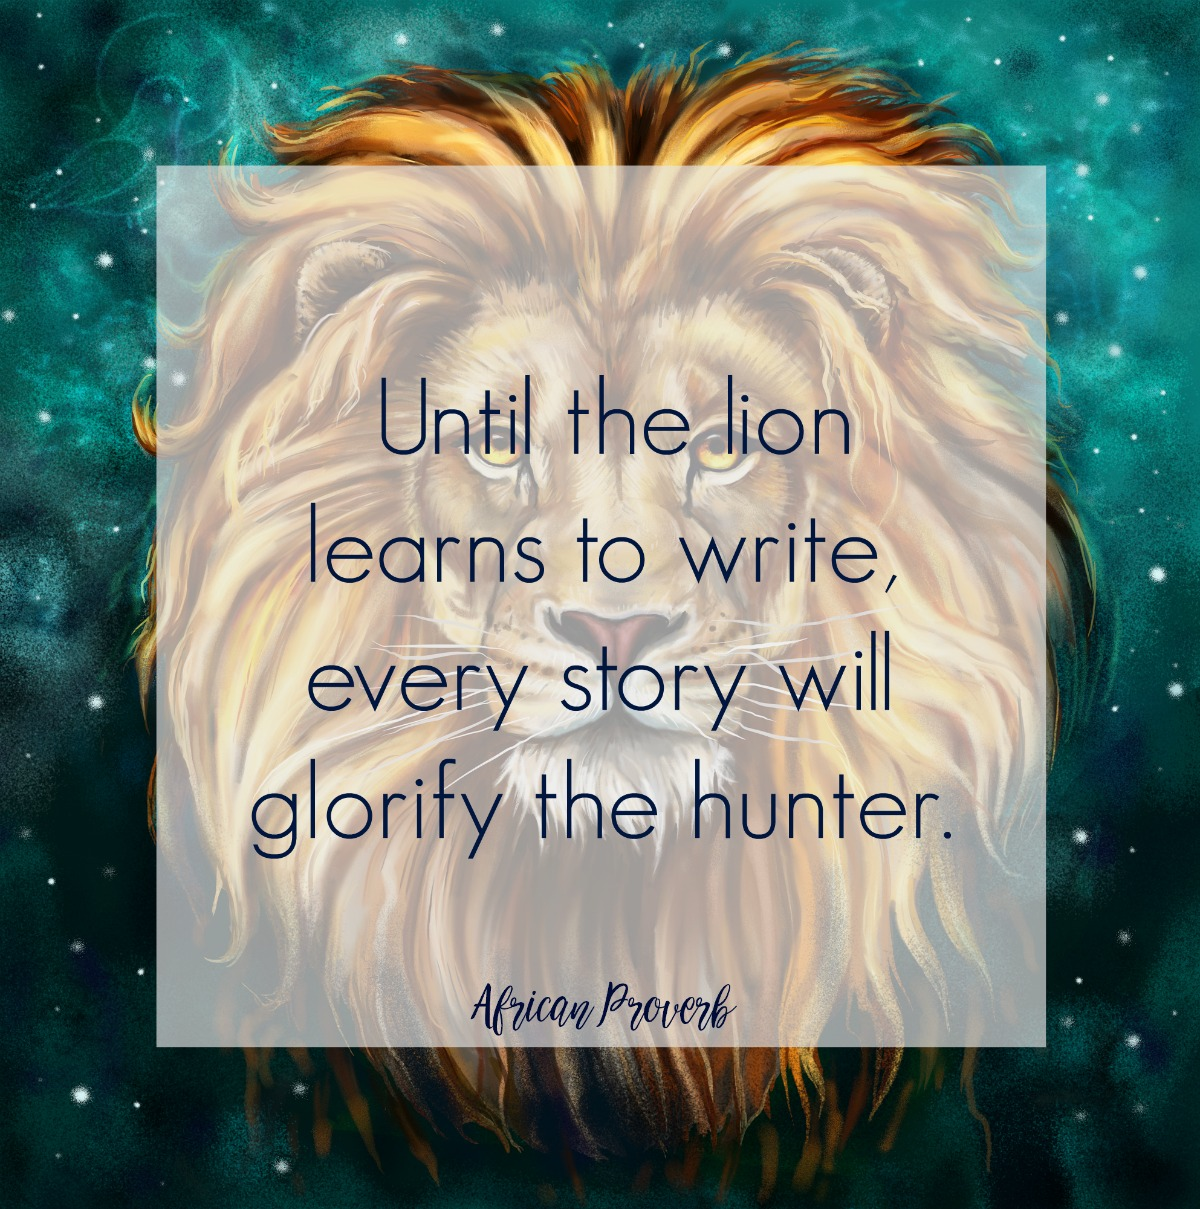 Until the lion learns to write, every story will glorify the hunter. African Proverb. Quotes on Circle of Daydreams. www.circleofdaydreams.com